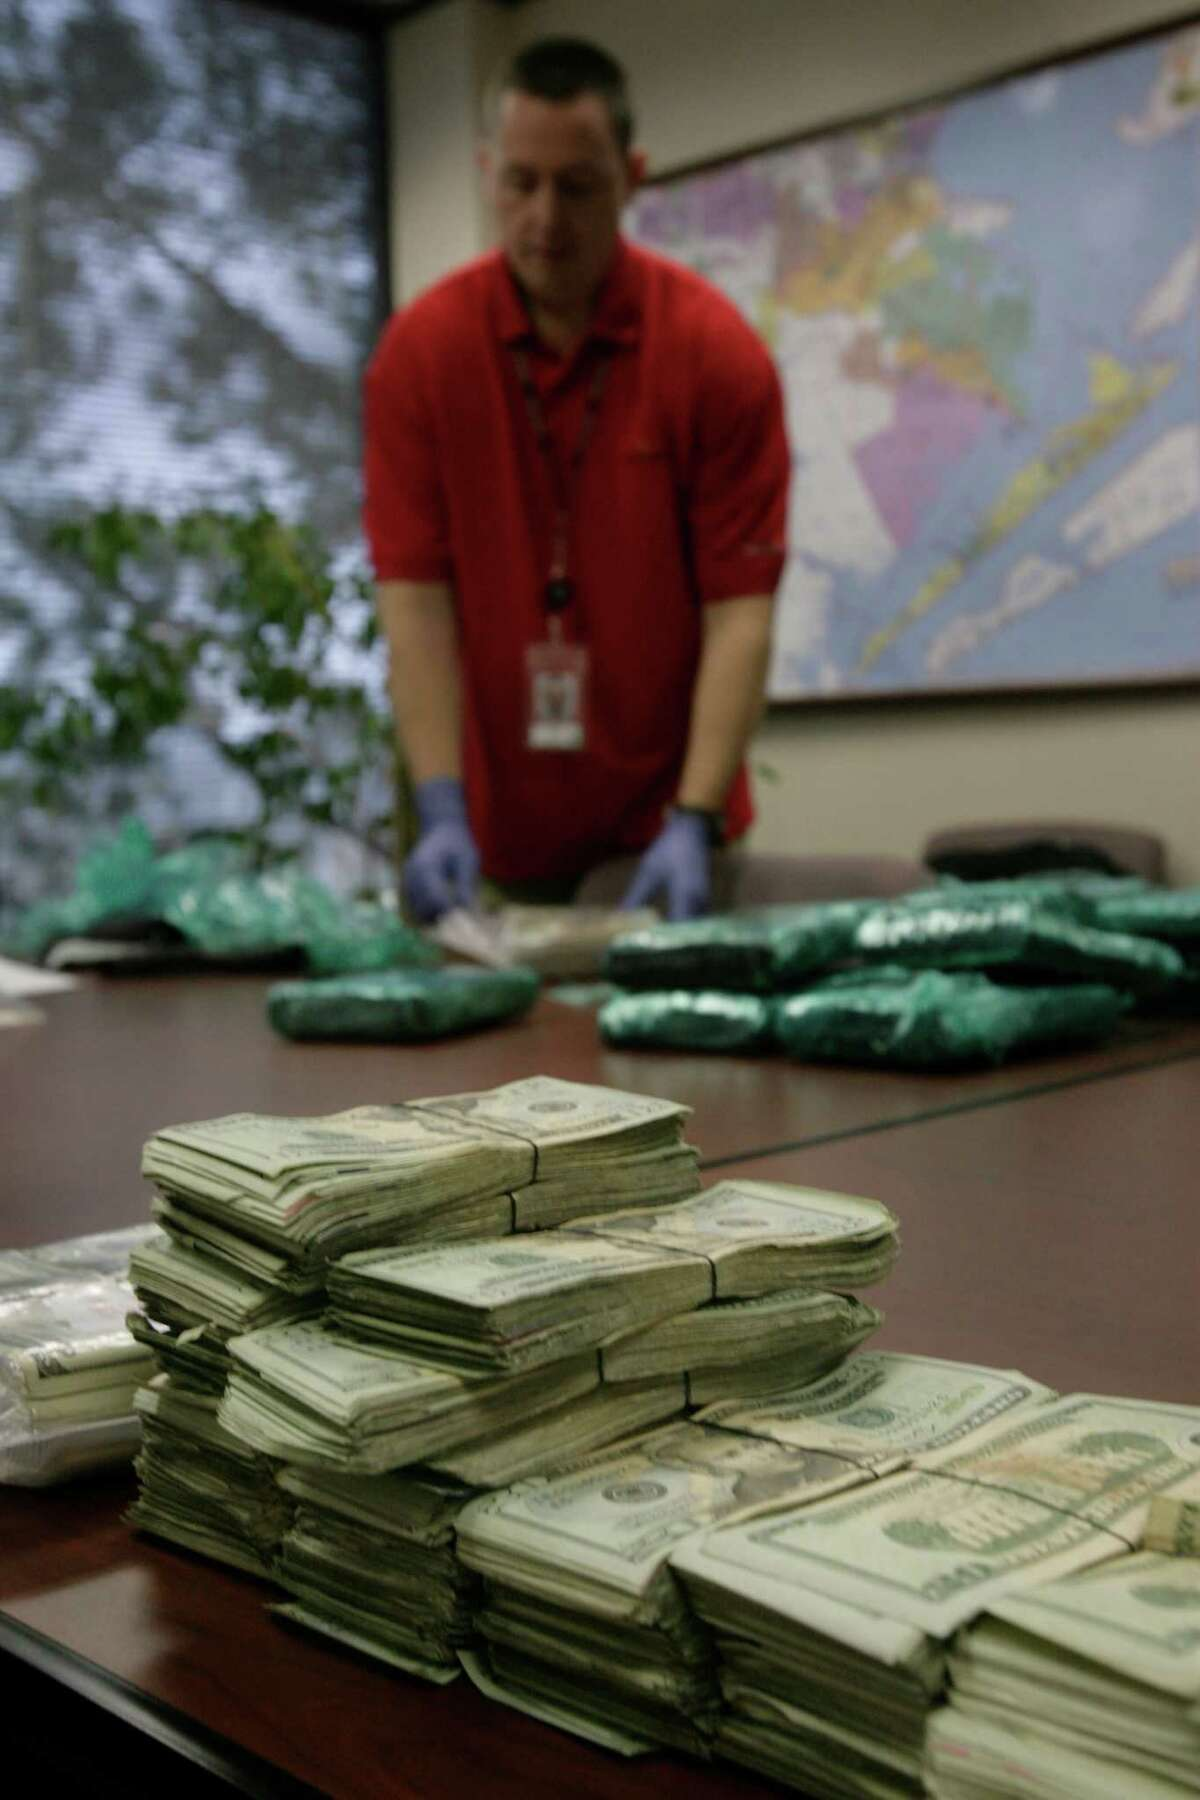 Drug Enforcement Administration agent Bill Furay cuts into packaged money at a DEA facility Wednesday February 23, 2011. Agents confiscated the money after a sting operation in Alabama. The estimated $1 million was part of a network in which cocaine was pumped from South Texas to Alabama.